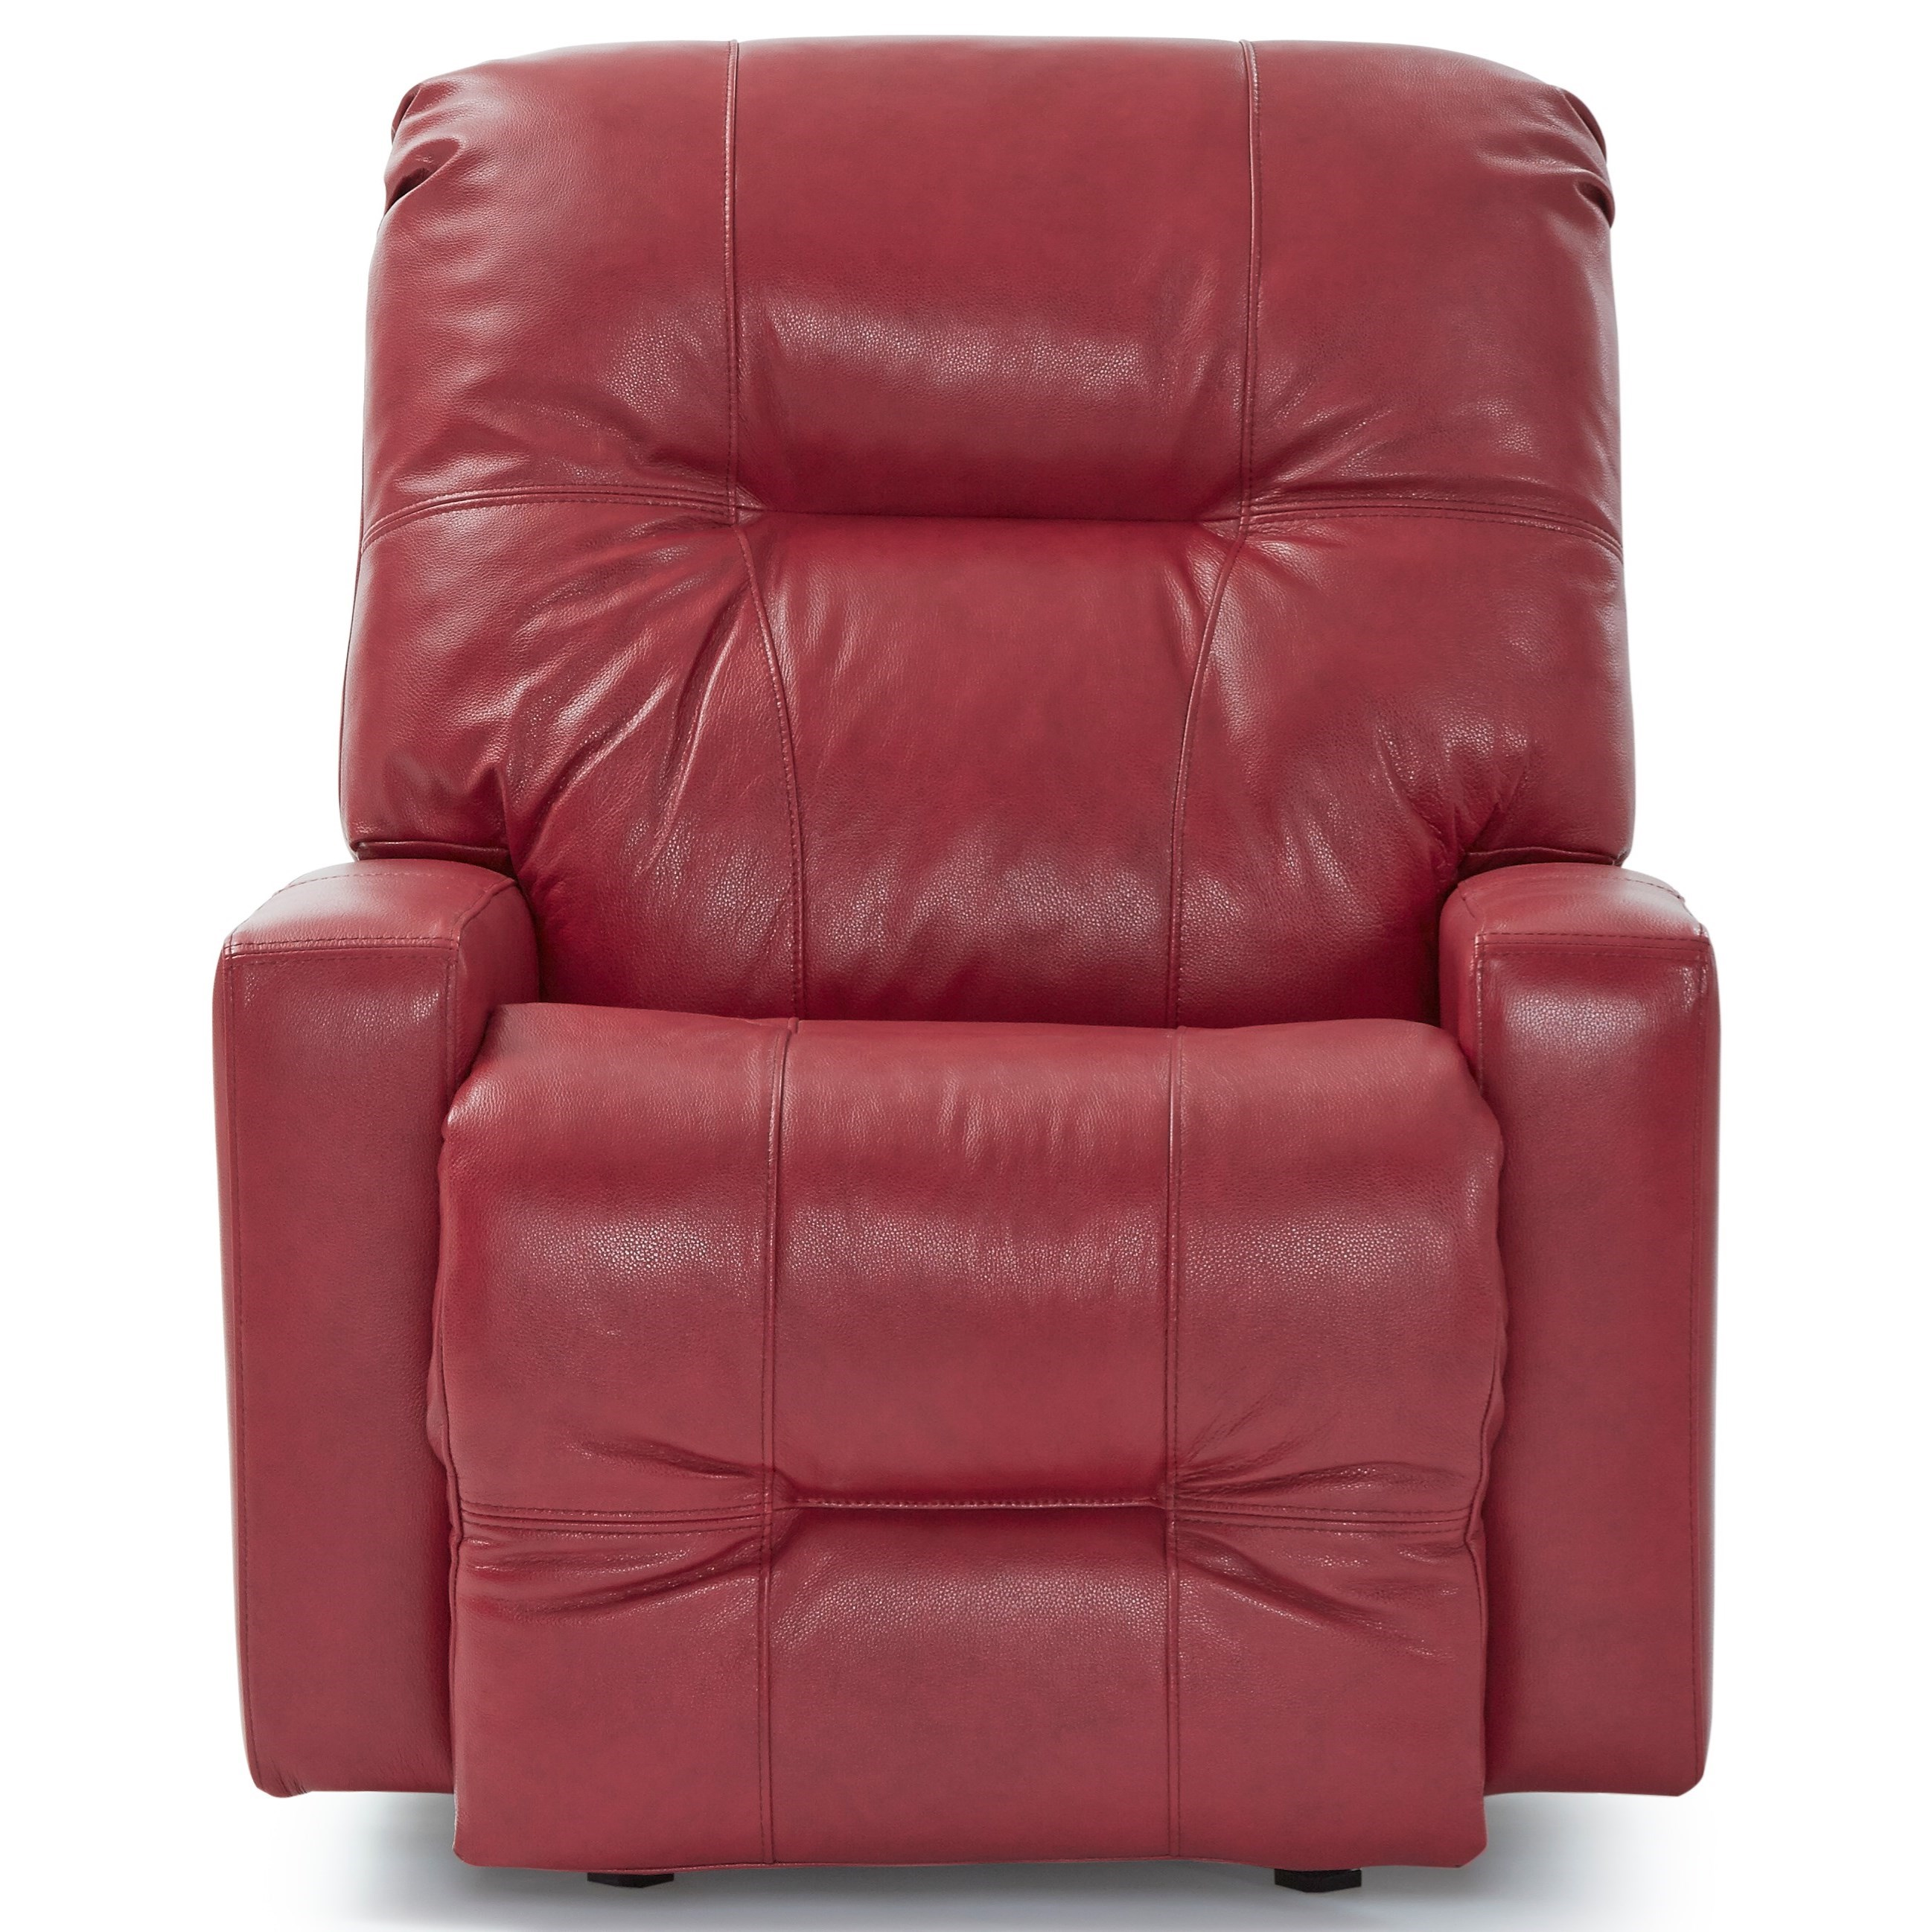 Kenley Power Lift Recliner by Best Home Furnishings at Stoney Creek Furniture